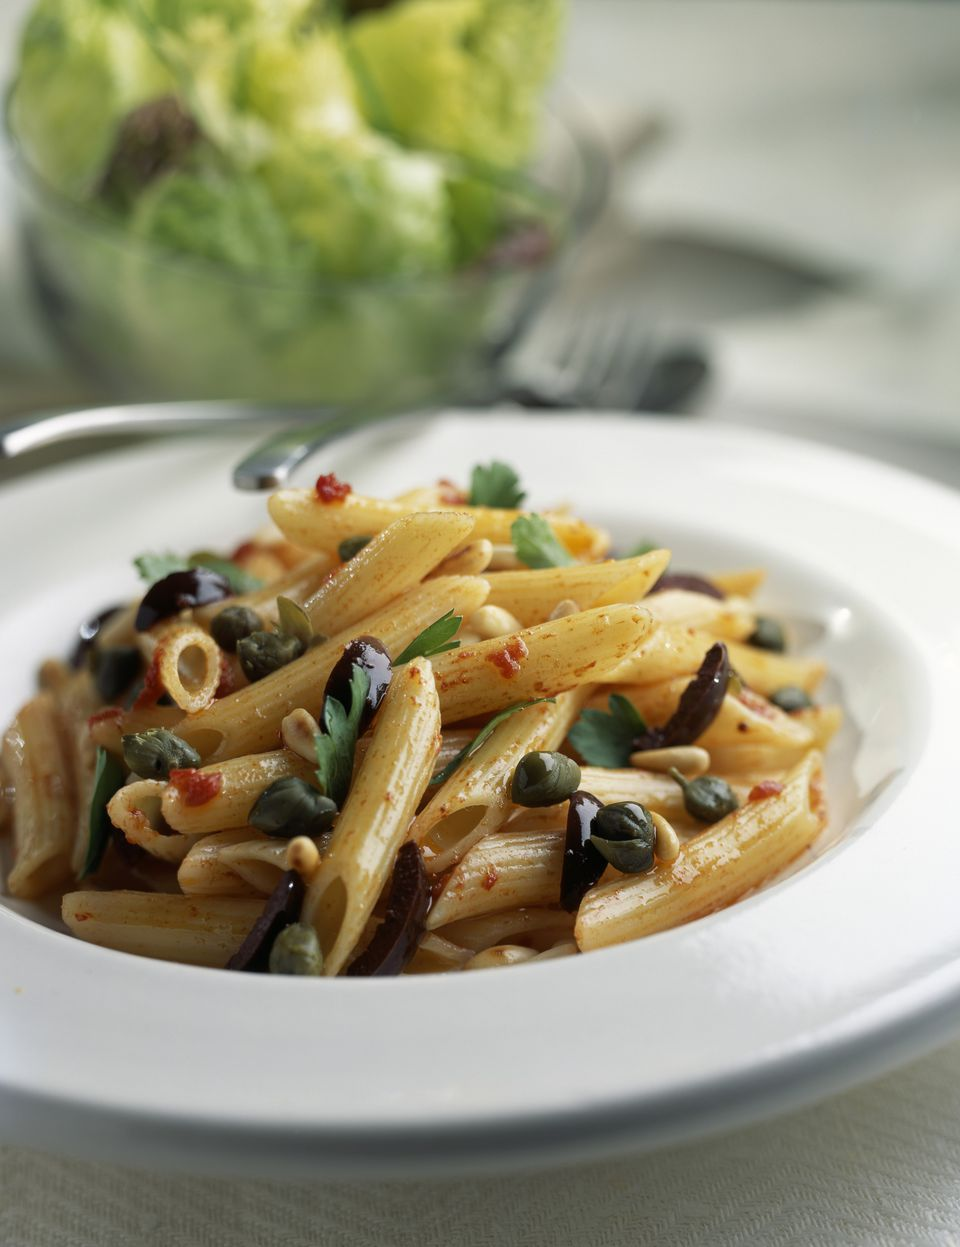 Penne with capers, olives and pinenuts